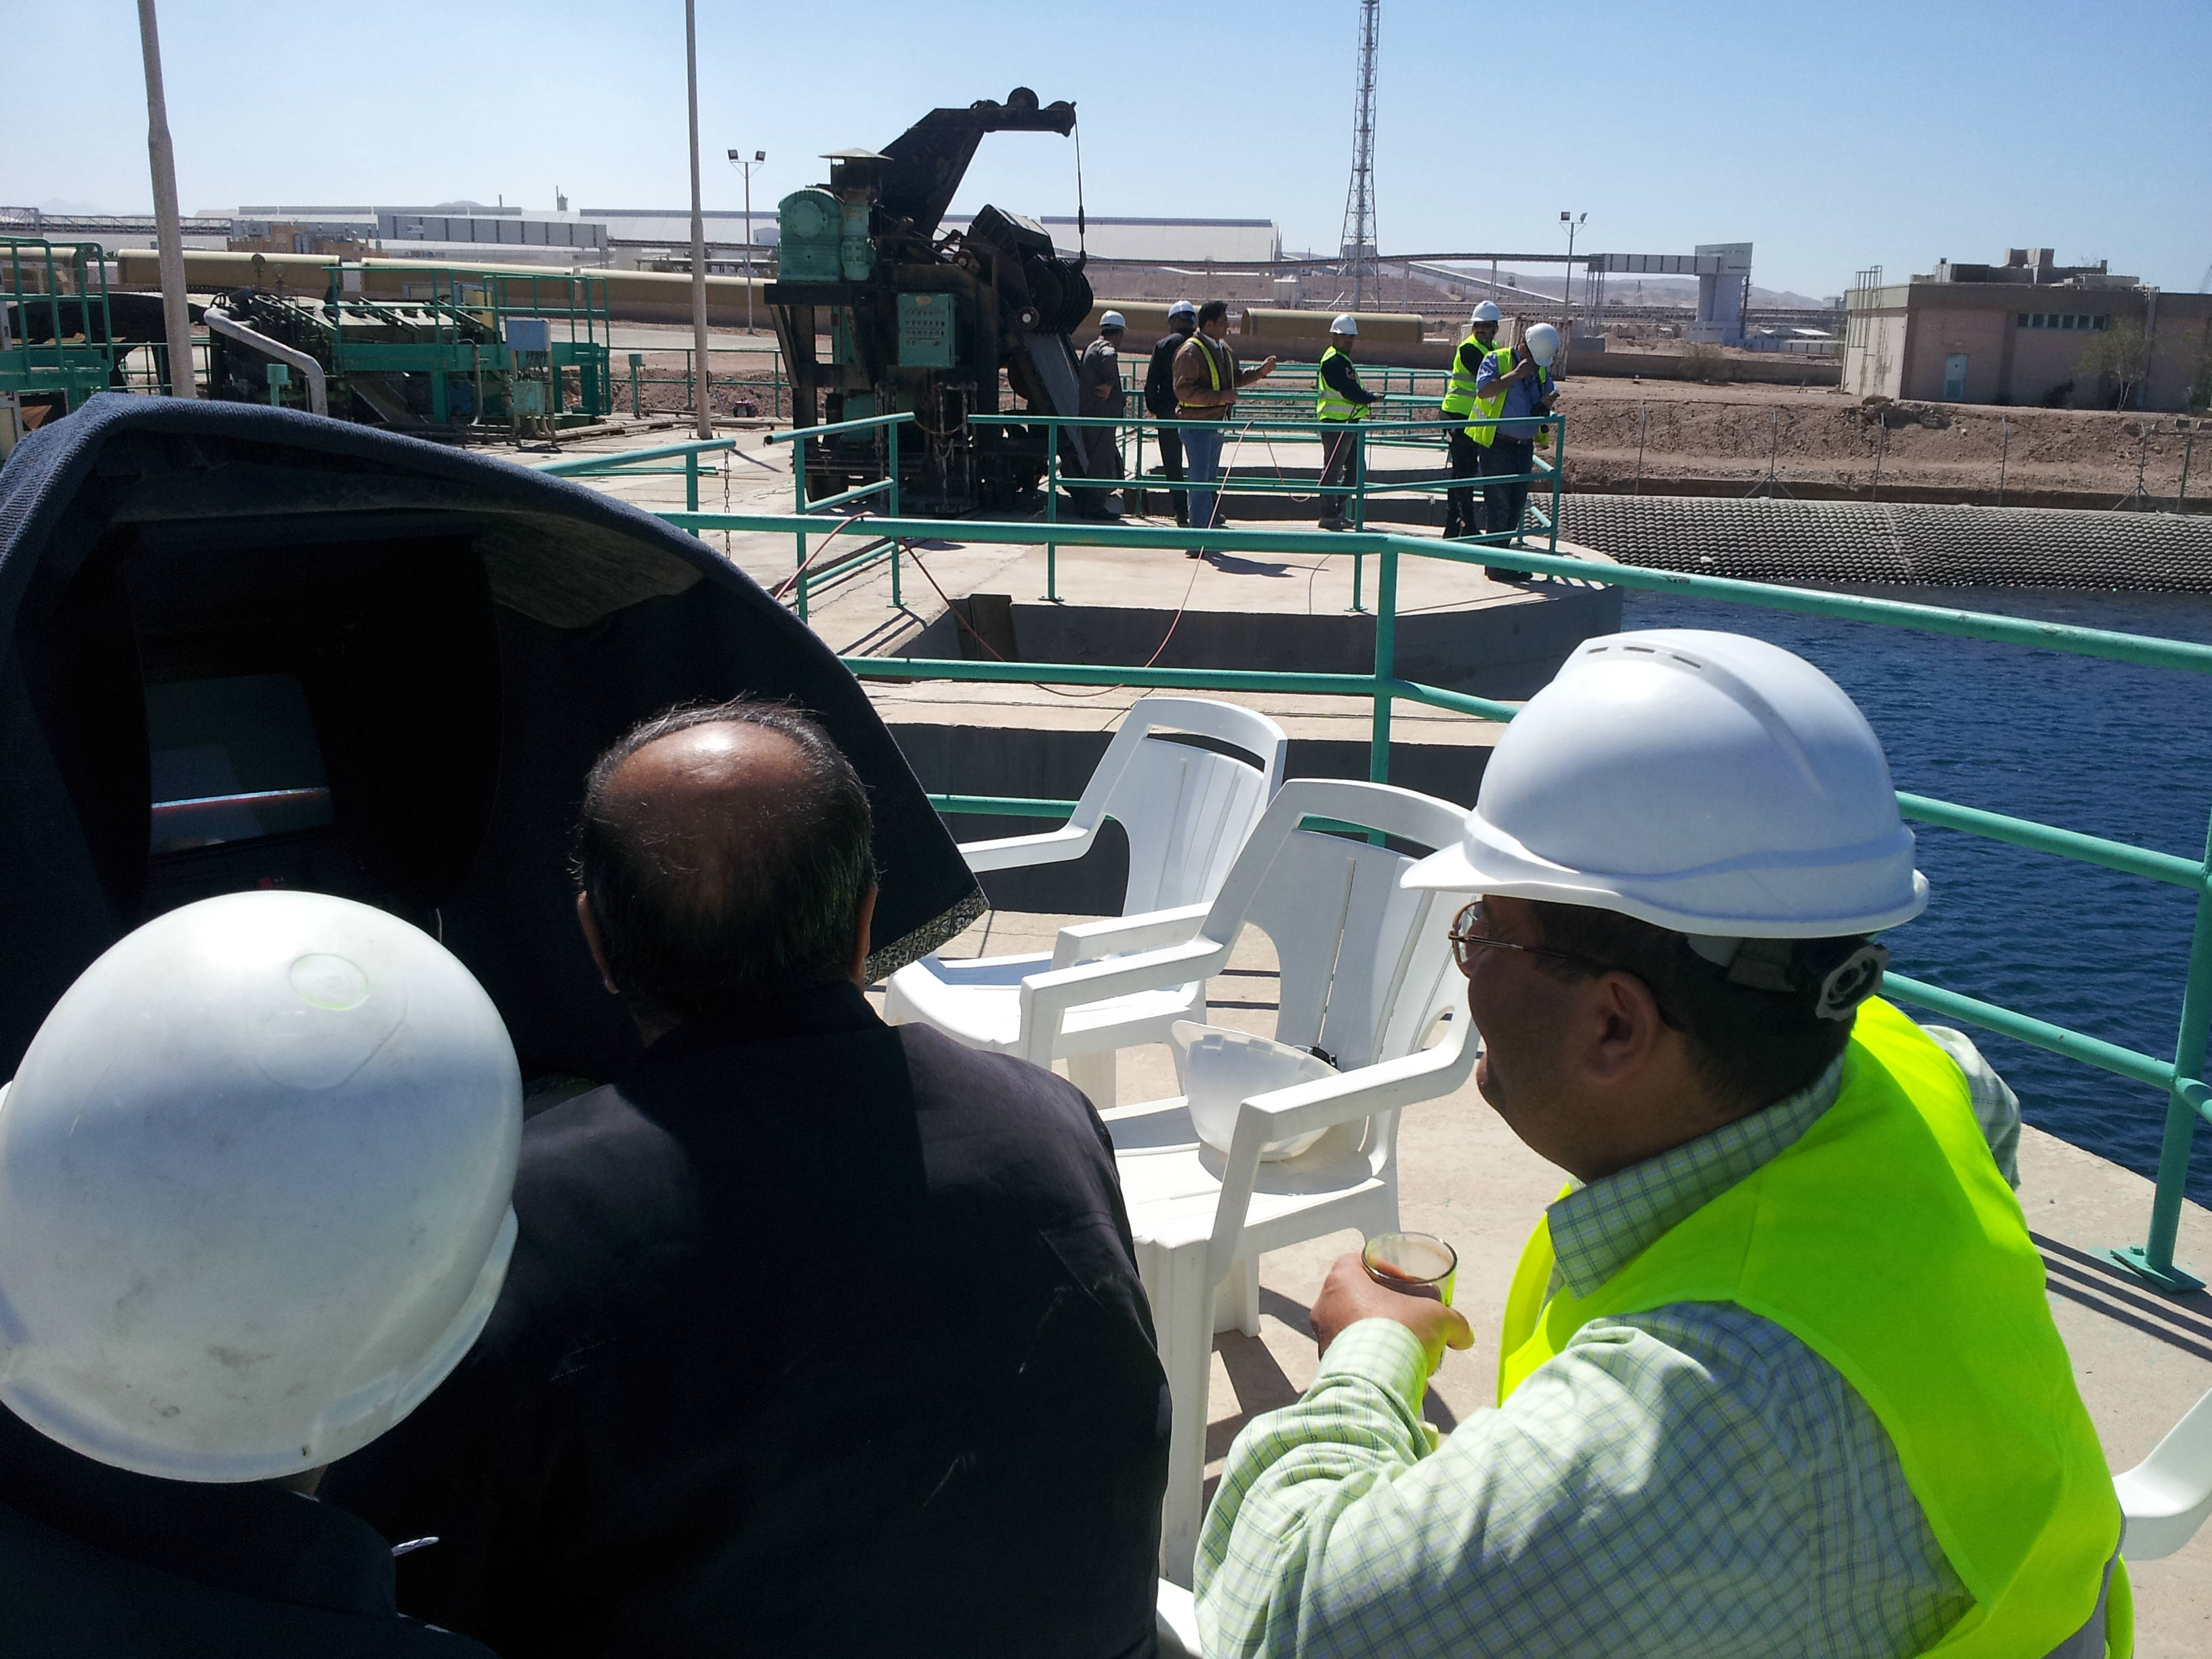 Viewing CCTV Screen During Inspection At Central Electric Generating Company, Jordan With ACES